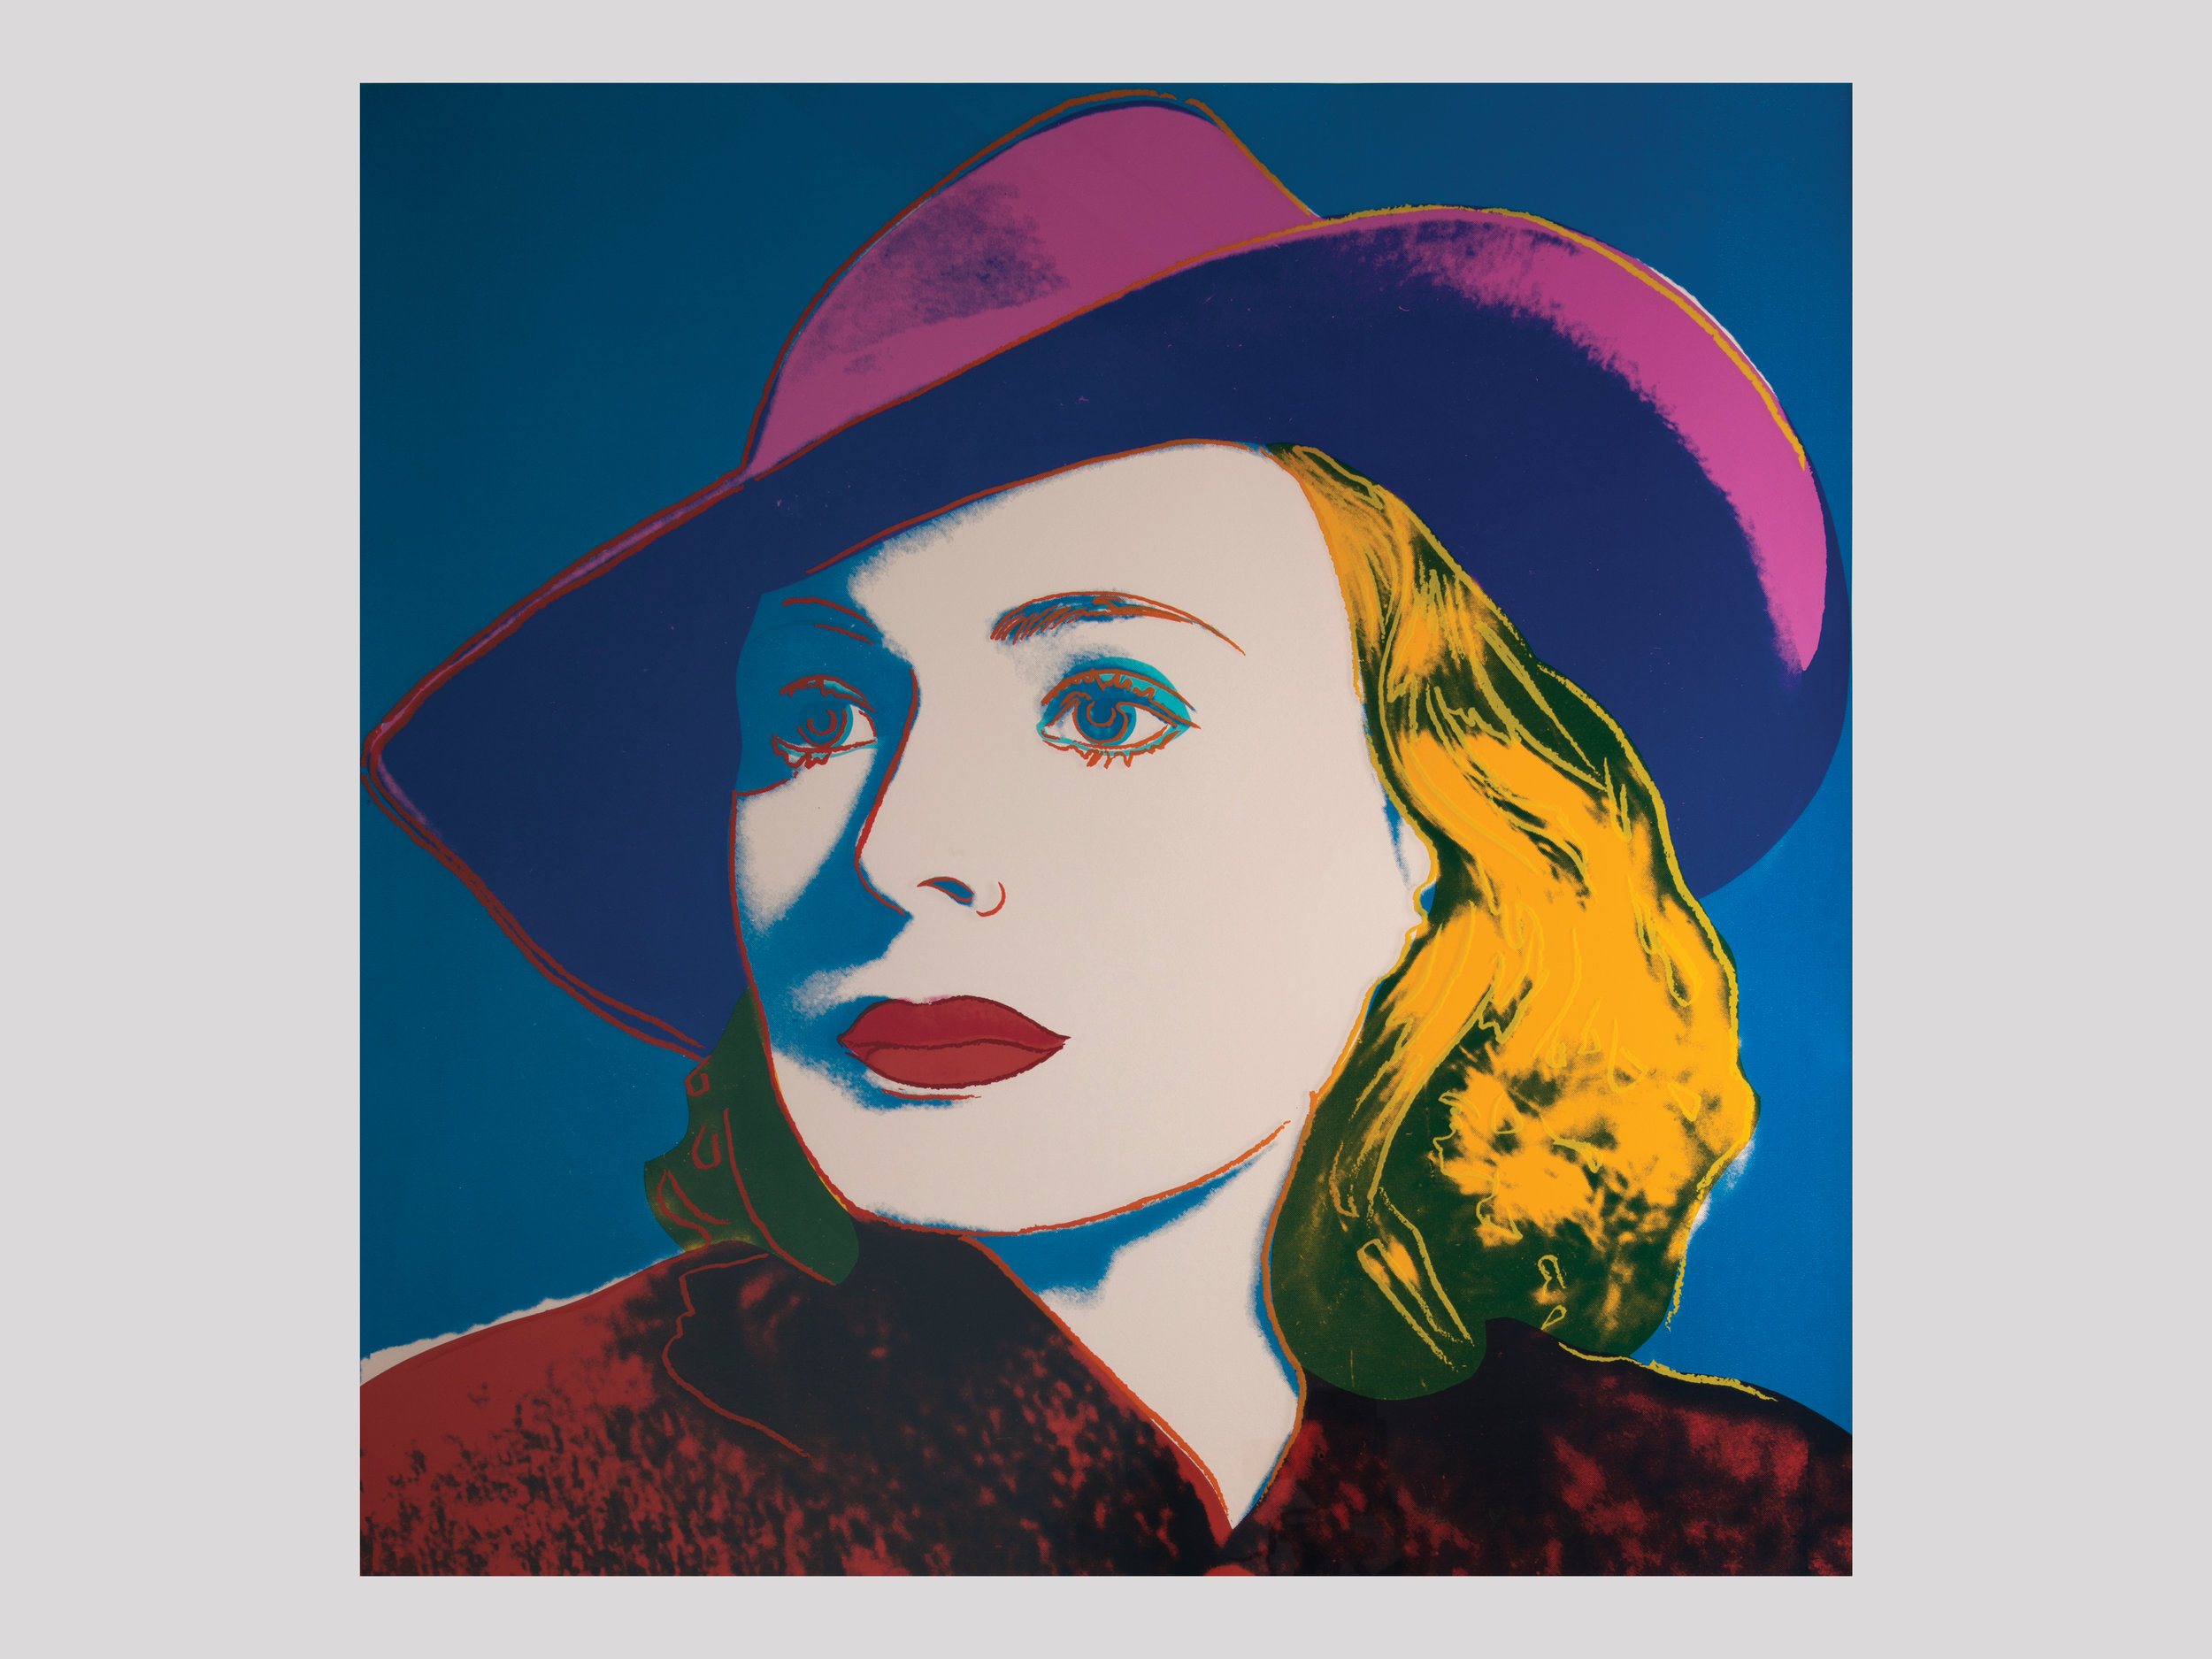 "Andy Warhol   Ingrid Bergman with hat  1983 Silkscreen in colours 91,4 x 91,4 cm Edition of 250 + 50 AP  Available   ""The famous Swedish Hollywood star Ingrid Bergman passed away in 1982, and shortly thereafter, Per Olov Börjeson, the founder of Galleri Börjesson in Malmö, contacted Andy Warhol to discuss the possibility of commemorating her legacy with a print. The result was the triptych  Ingrid Bergman , which includes three different portraits of her ( Herself, the Nun, with Hat ) and was published in 1983. The set was sold complete or as individual prints. The most popular of the three portraits, all chosen from her major film roles, was  Ingrid Bergman with Hat . It is the visually most striking of the portraits, and the photo depicts her in her role as Ilsa Lund in  Casablanca  (1942), in which she starred against Humphrey Bogart."""